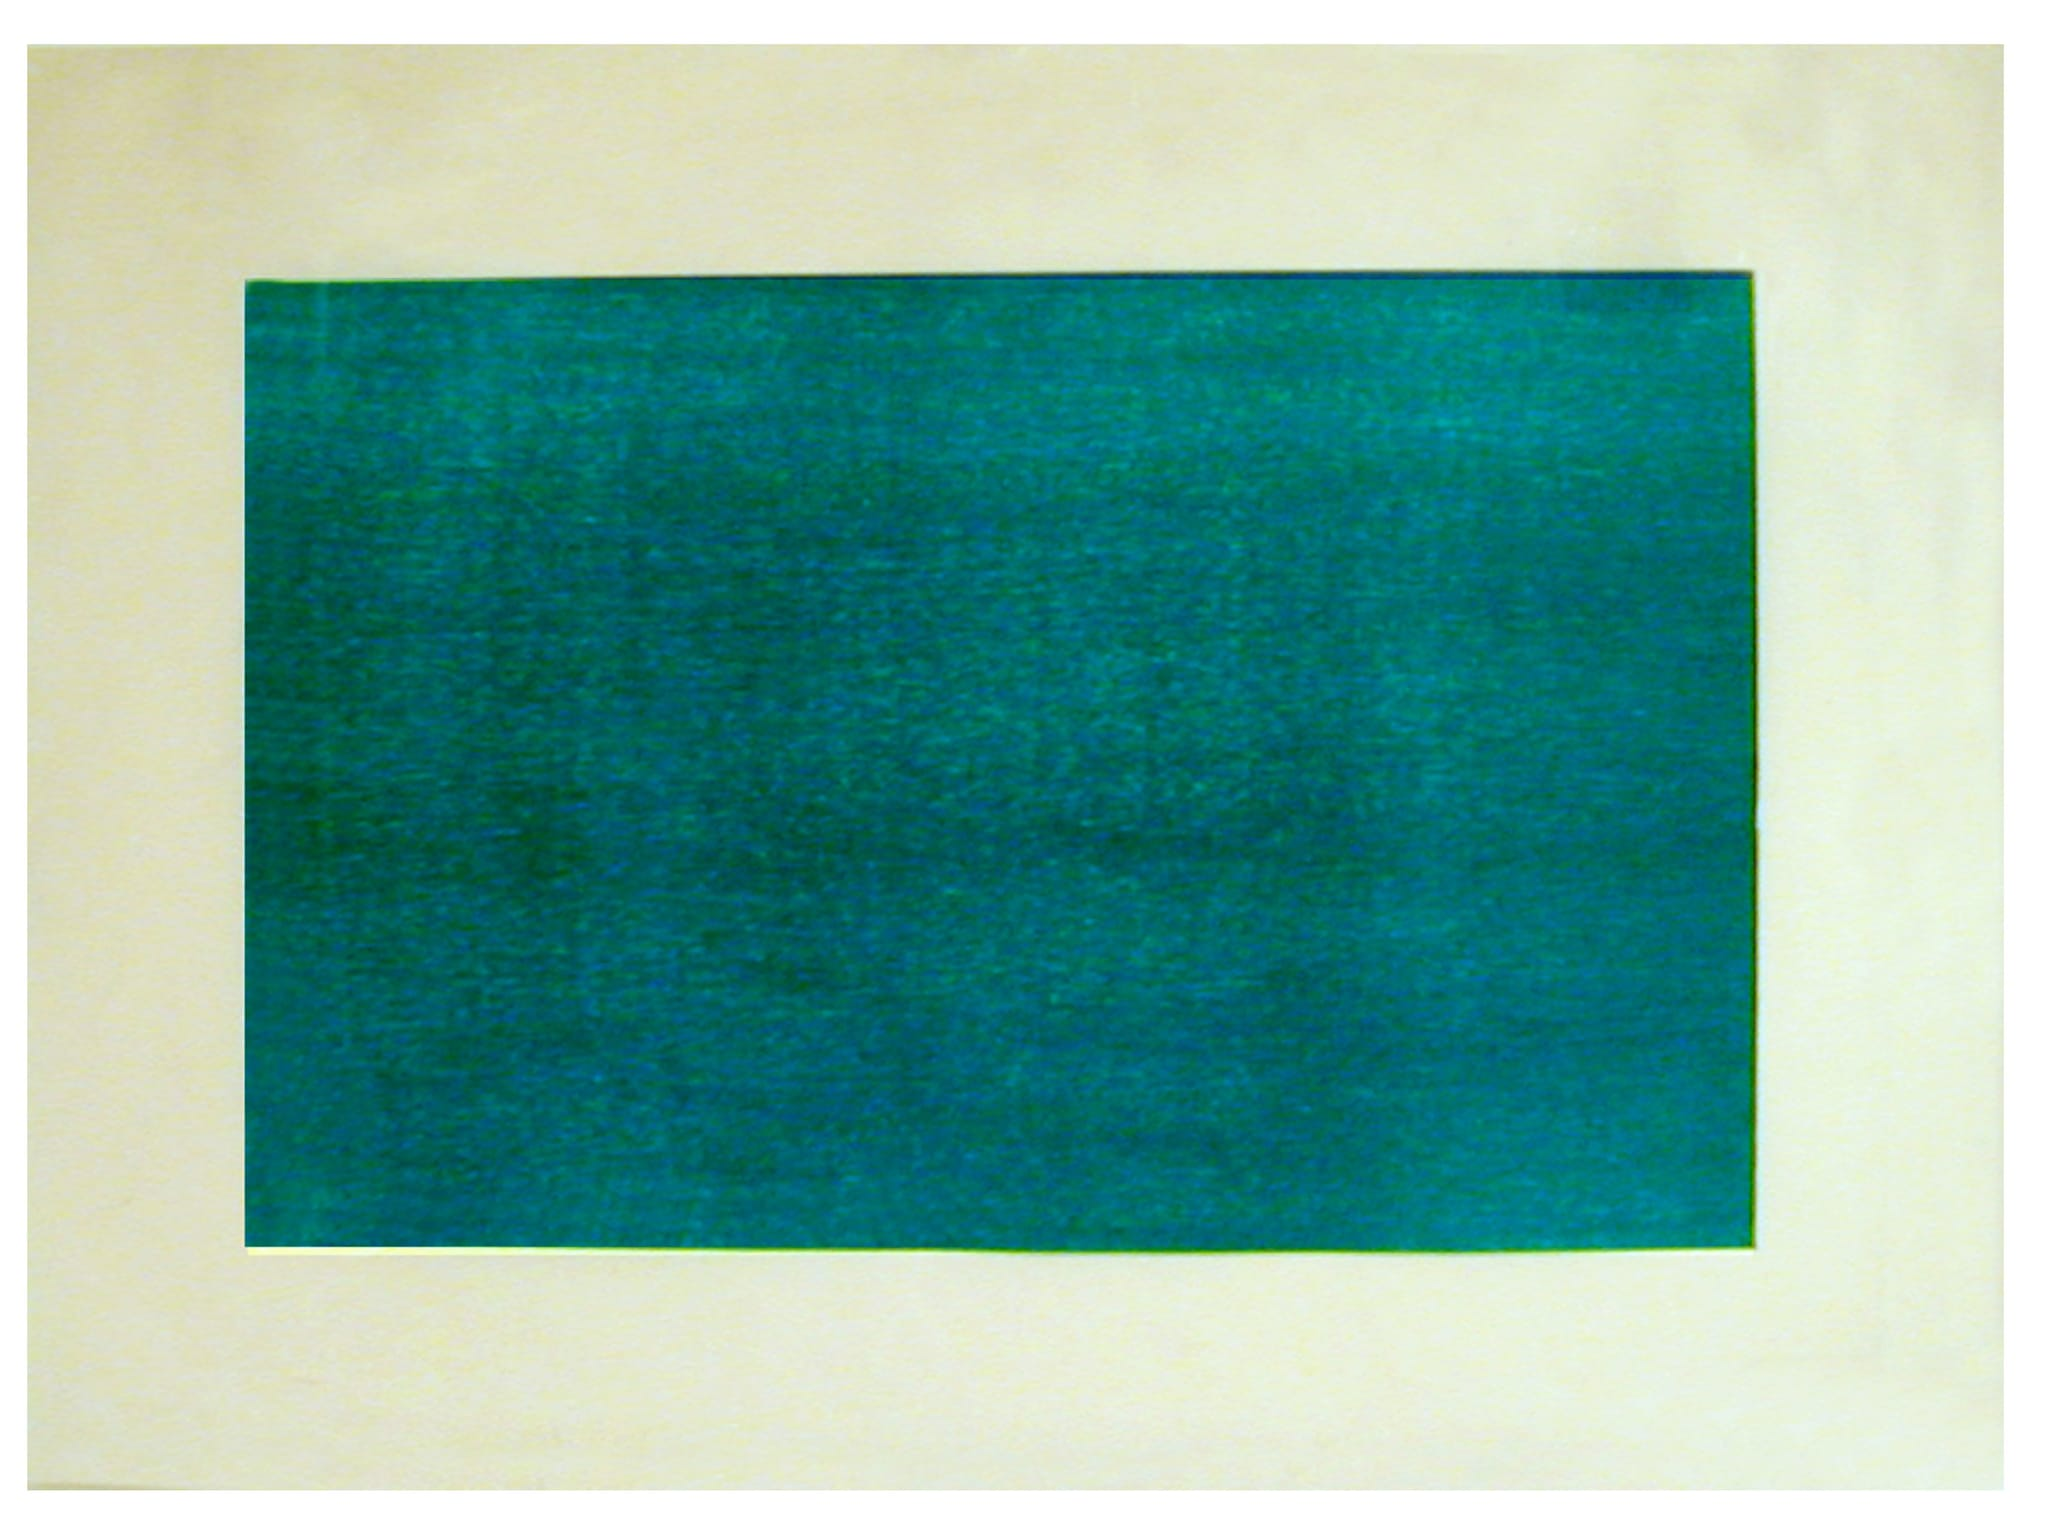 Untitled (#156) by Donald Judd